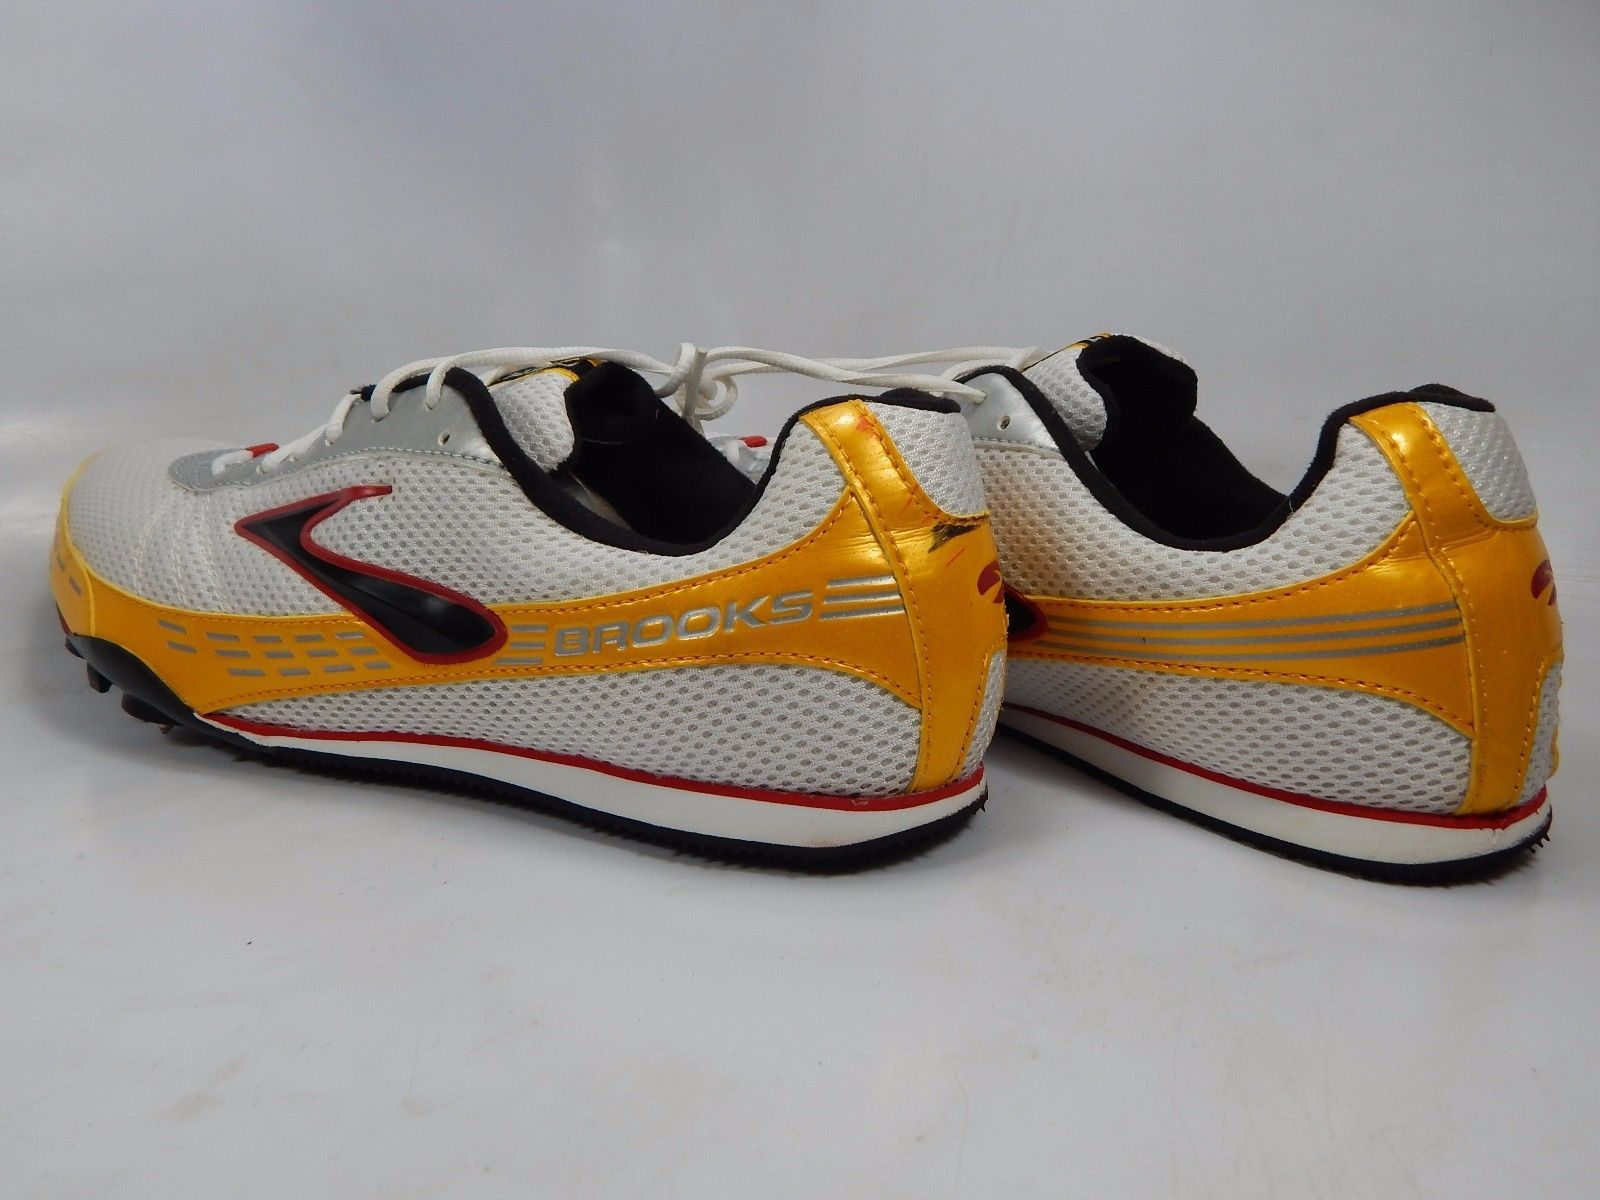 Brooks Nerve LD Men's Track Running Shoes Sz US 13 M (D) EU 47.5 1000151D173